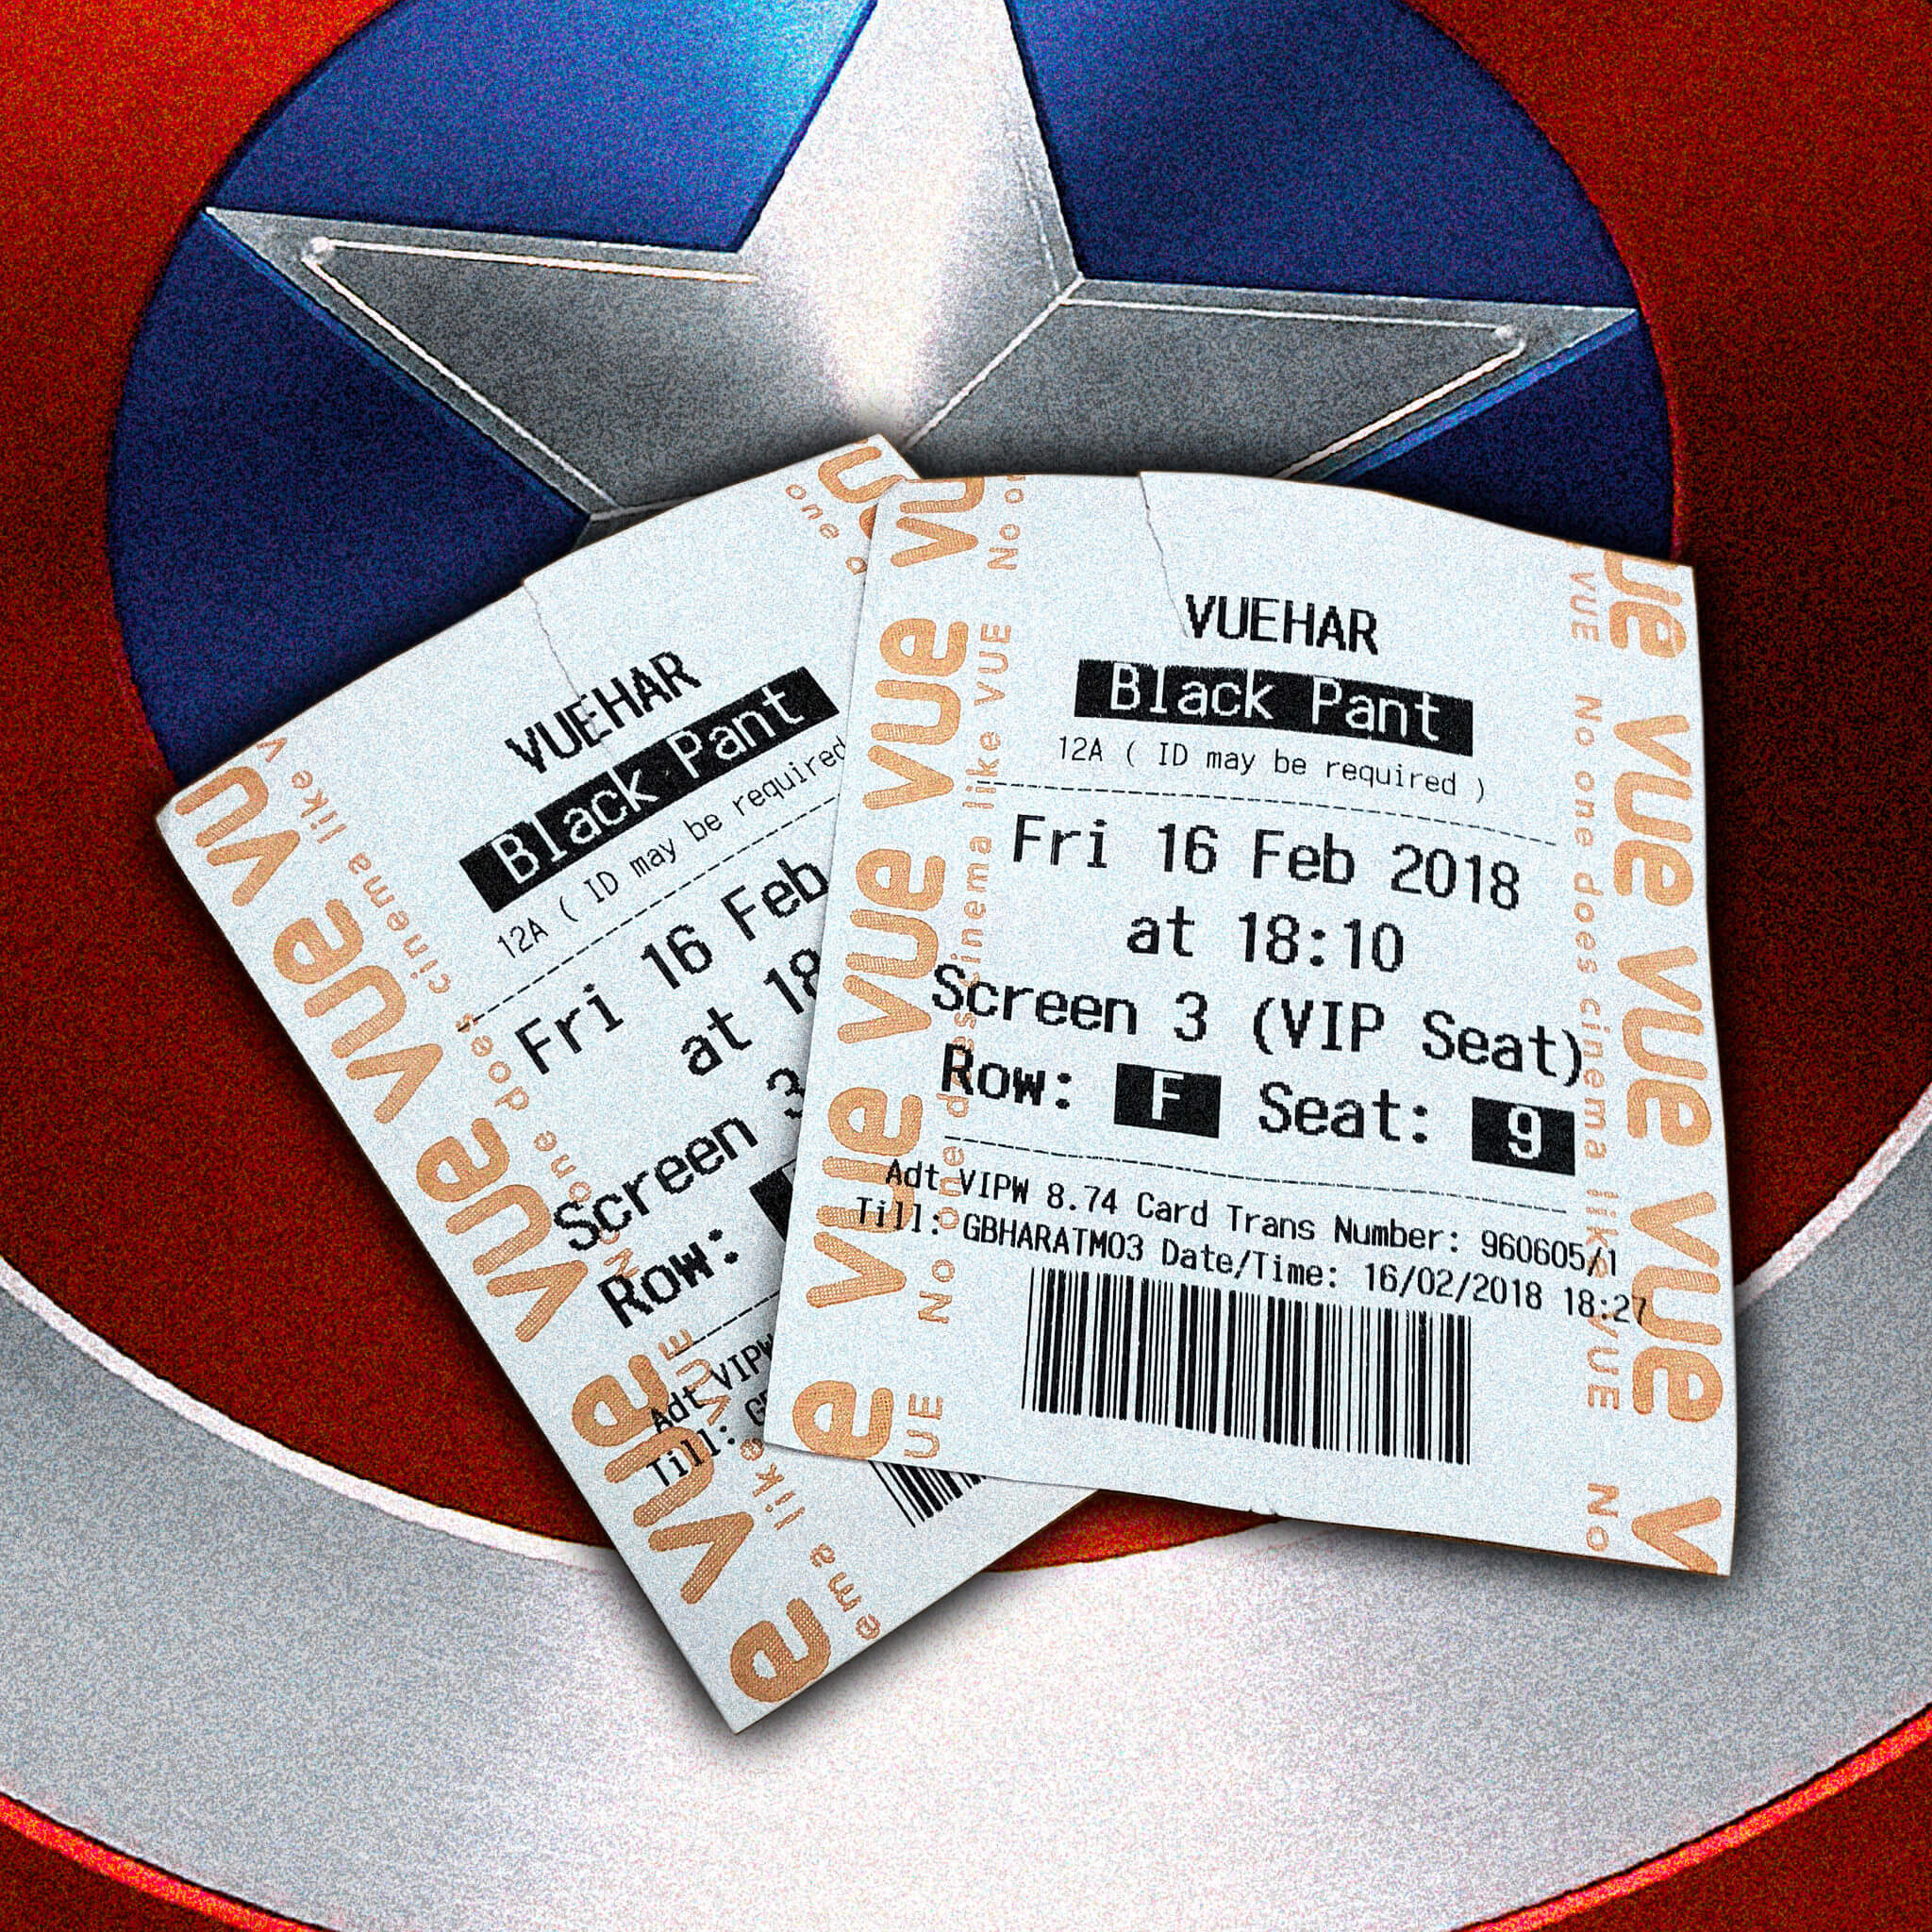 Black Panther Film Tickets - Photo Credit: brett jordan (Flickr)